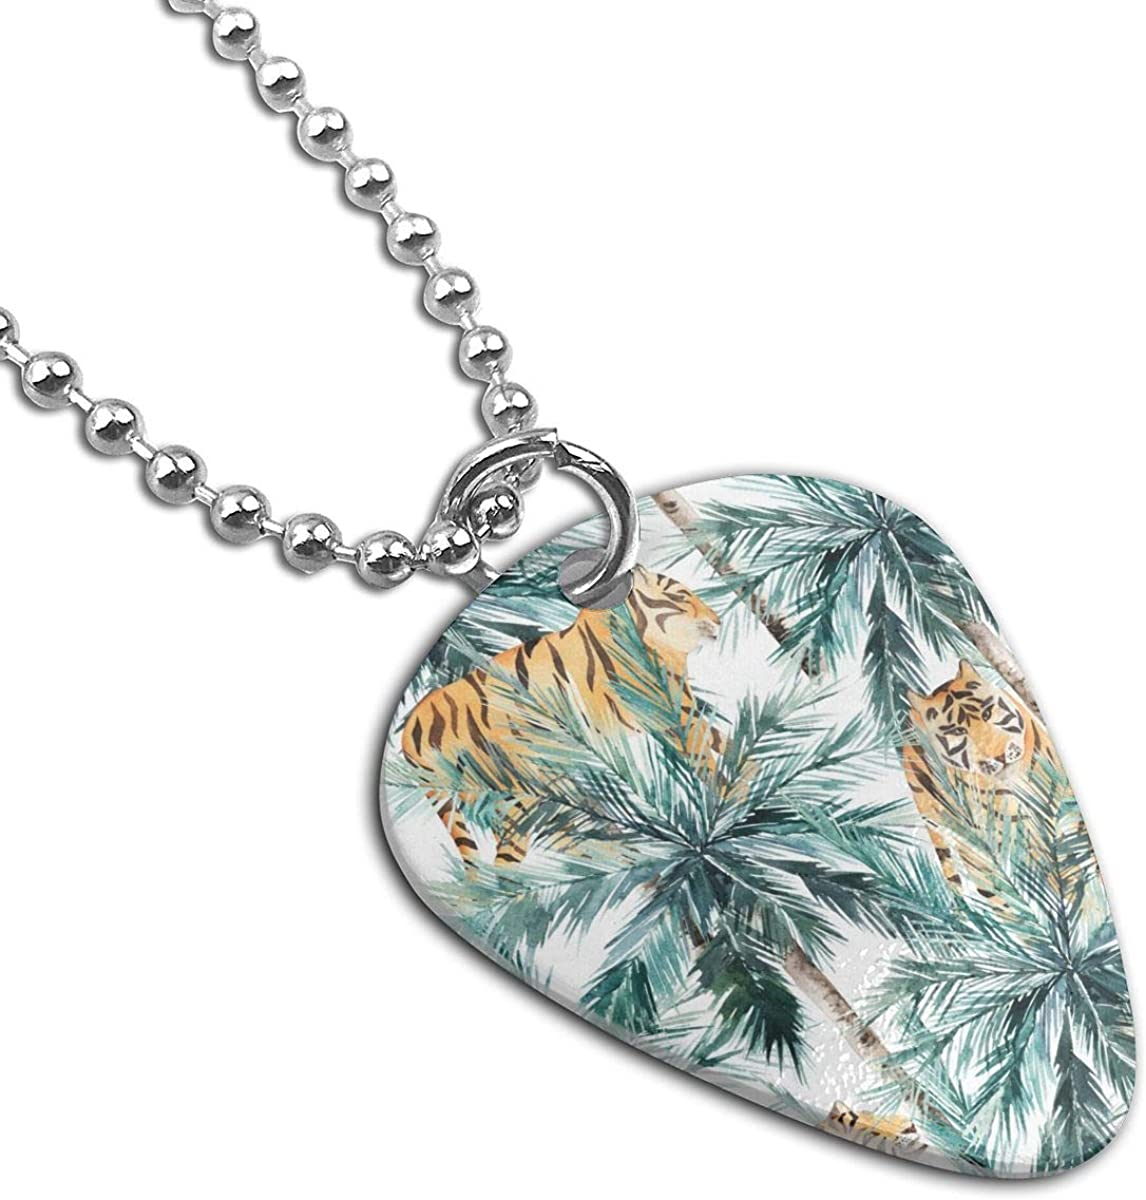 Palm Trees And Tiger Custom Guitar Pick Pendant Necklace Keychain